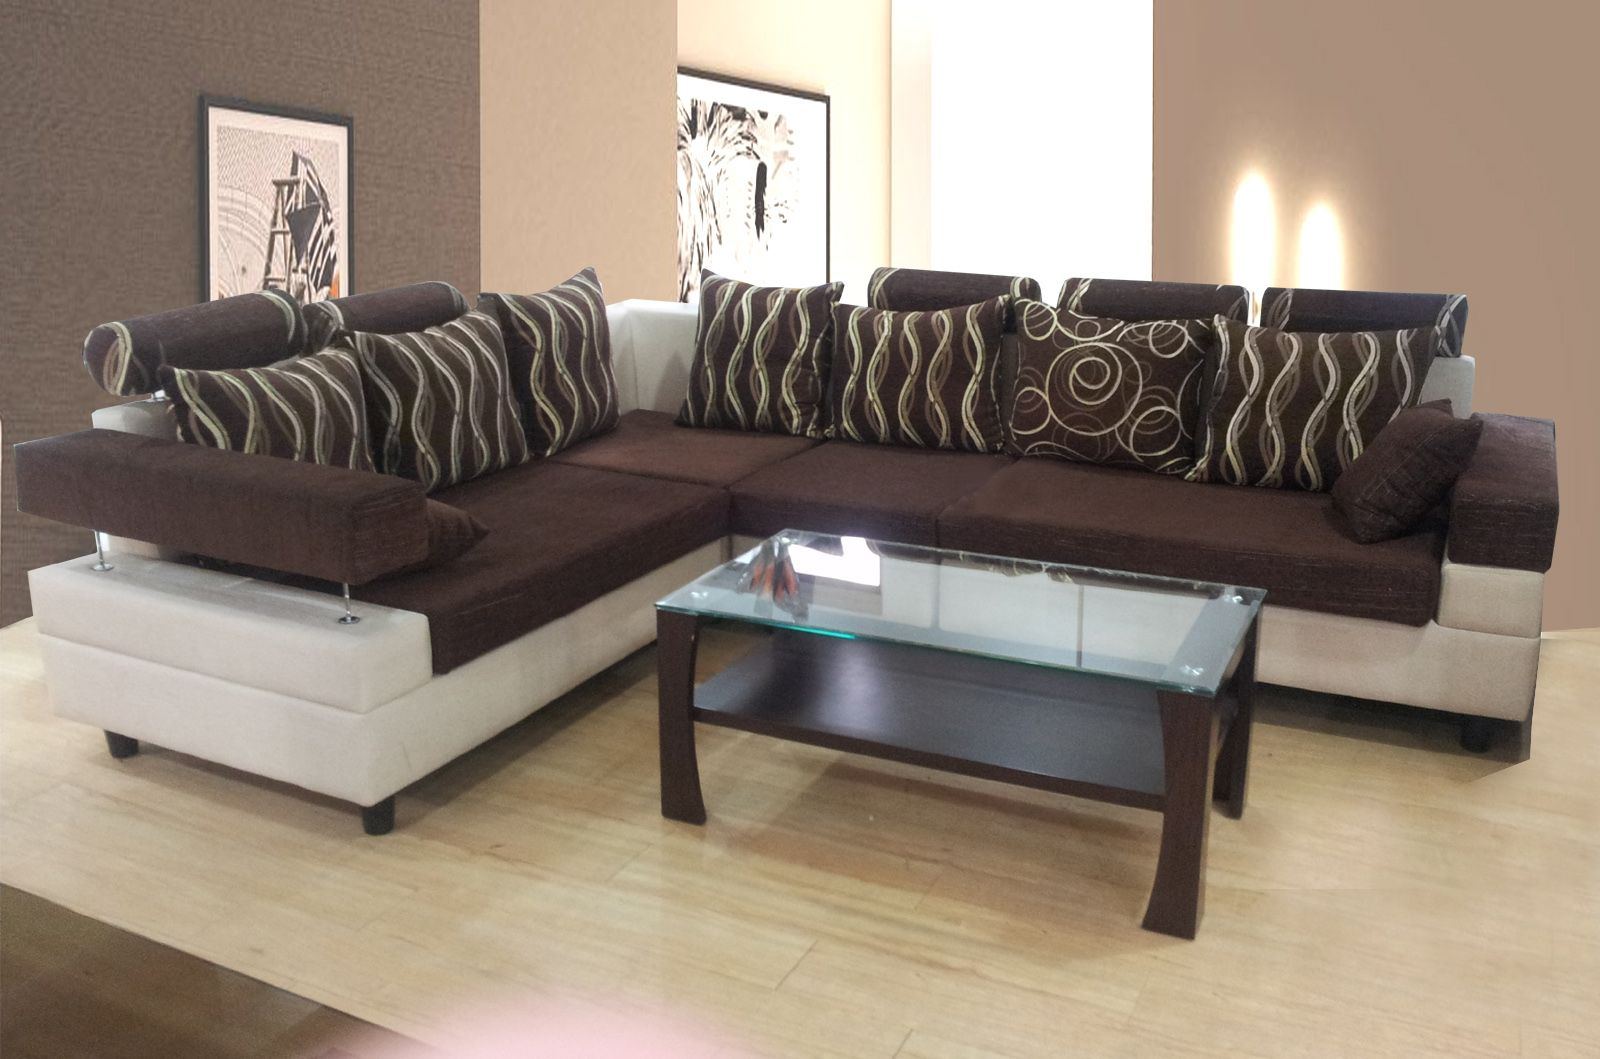 jaipur sofa custom reviews sectional american cheapbest satya ideas sofasbest brands of cheap quality images sofas size about best furniture in design full remodel on good awesome salebest